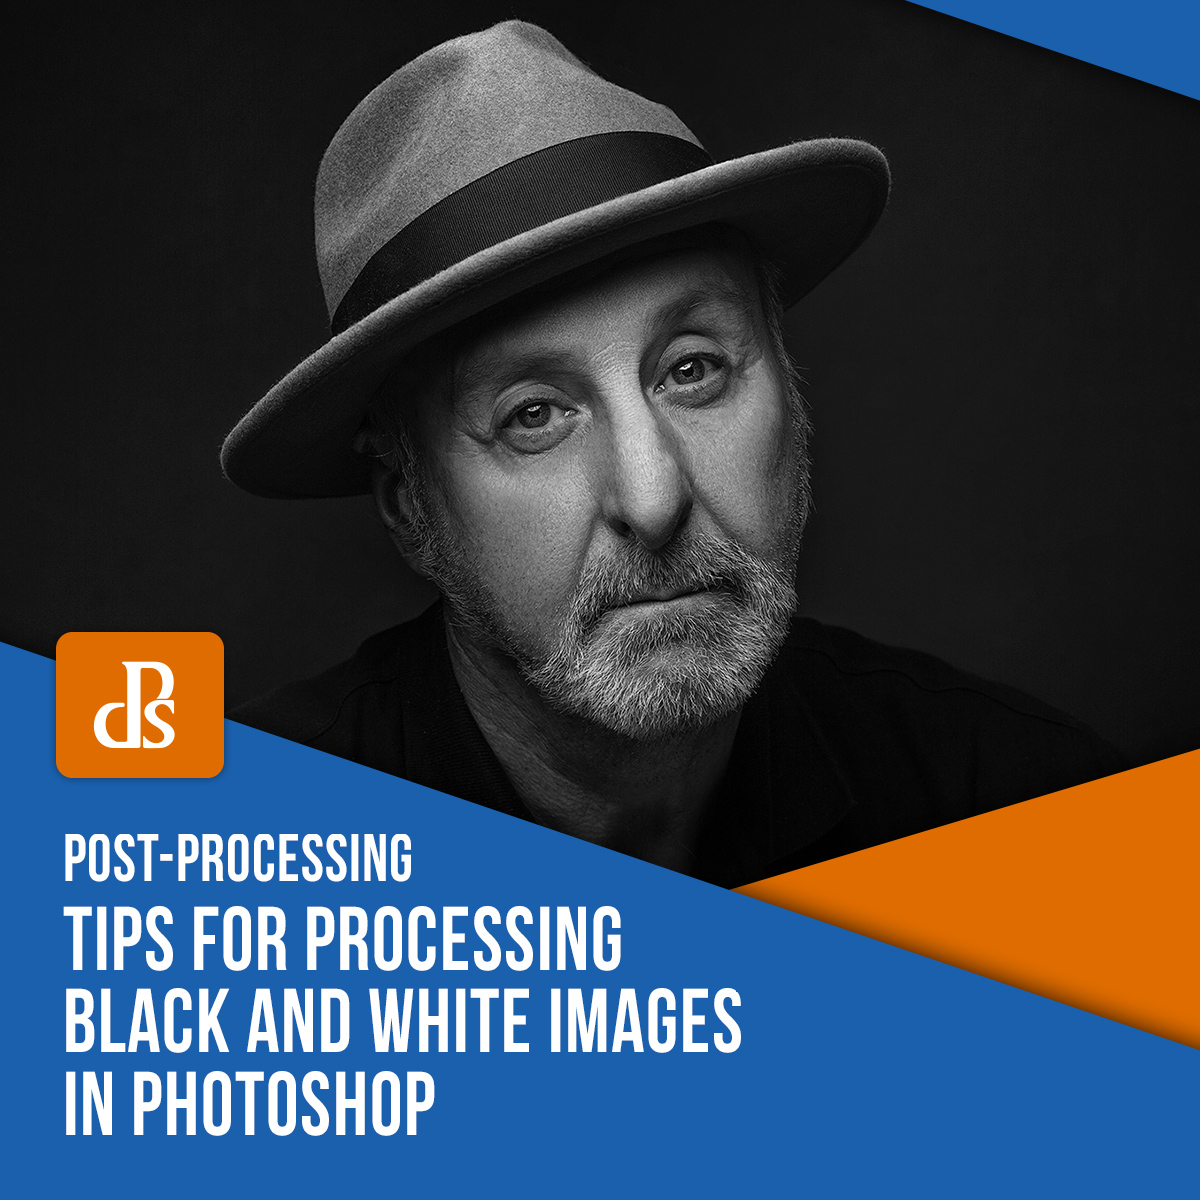 Tips for Processing Black and White Images in Photoshop